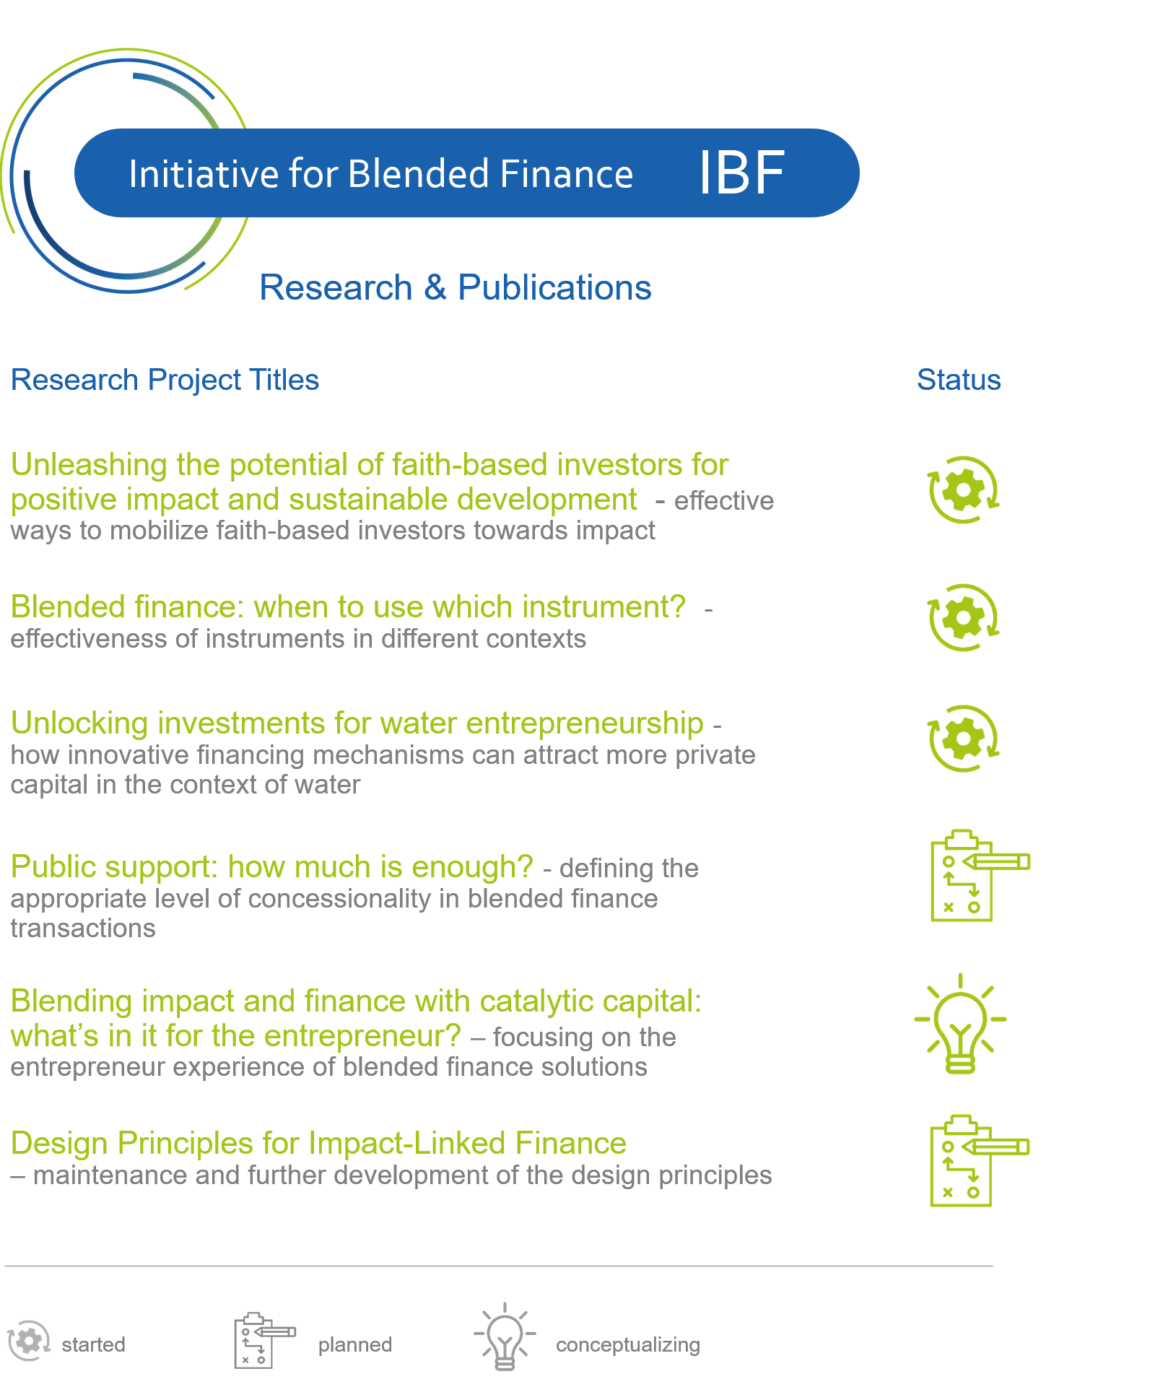 IBF Research & Publications 2021